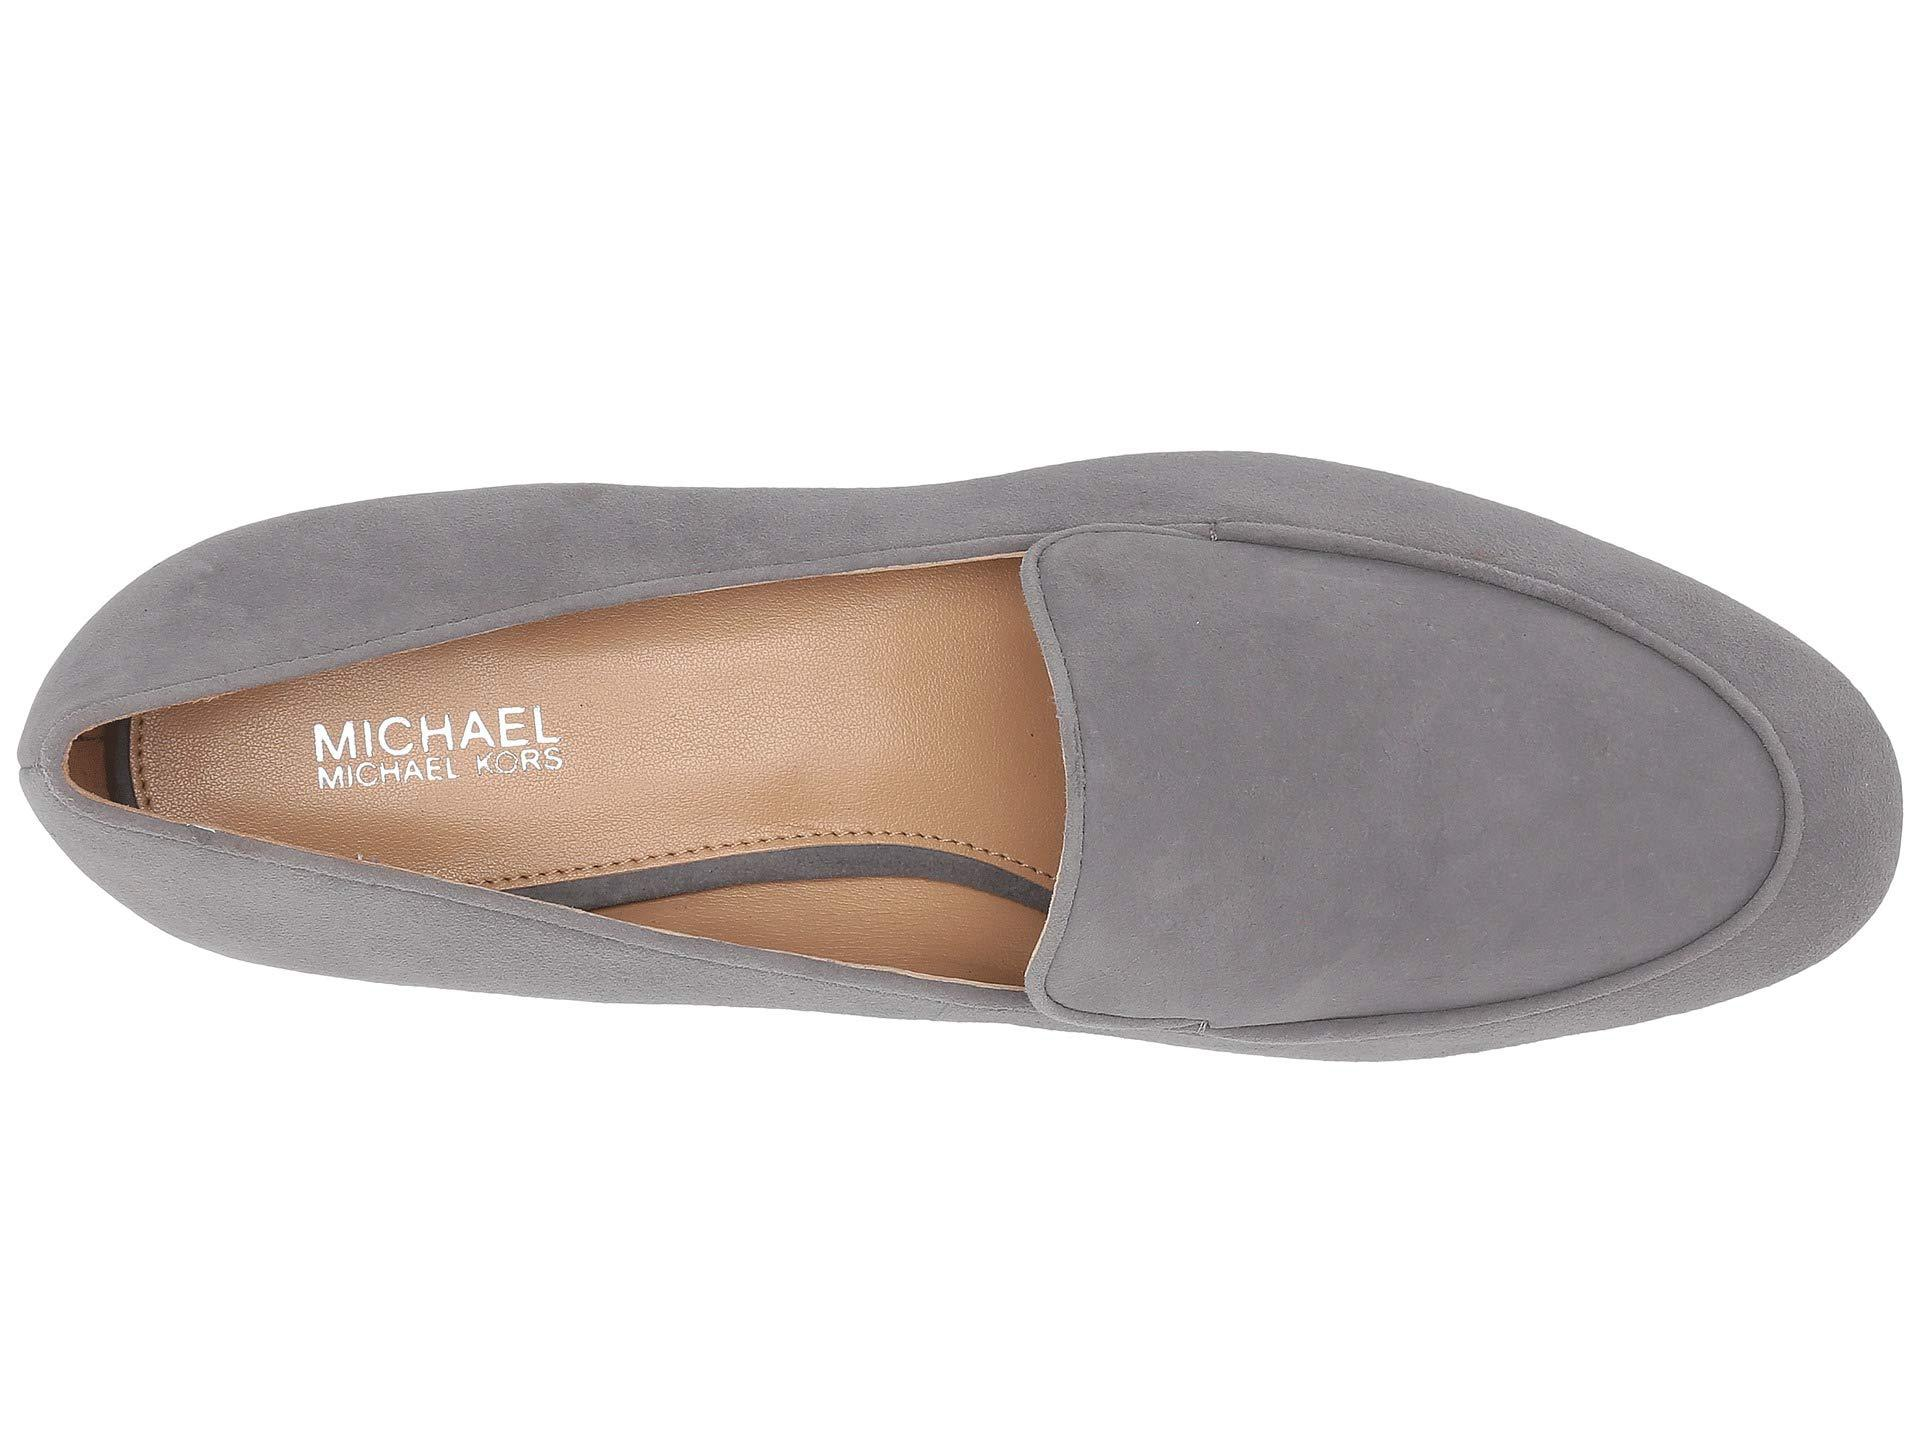 582fa7333a2 MICHAEL Michael Kors - Gray Valerie Slip-on - Lyst. View fullscreen